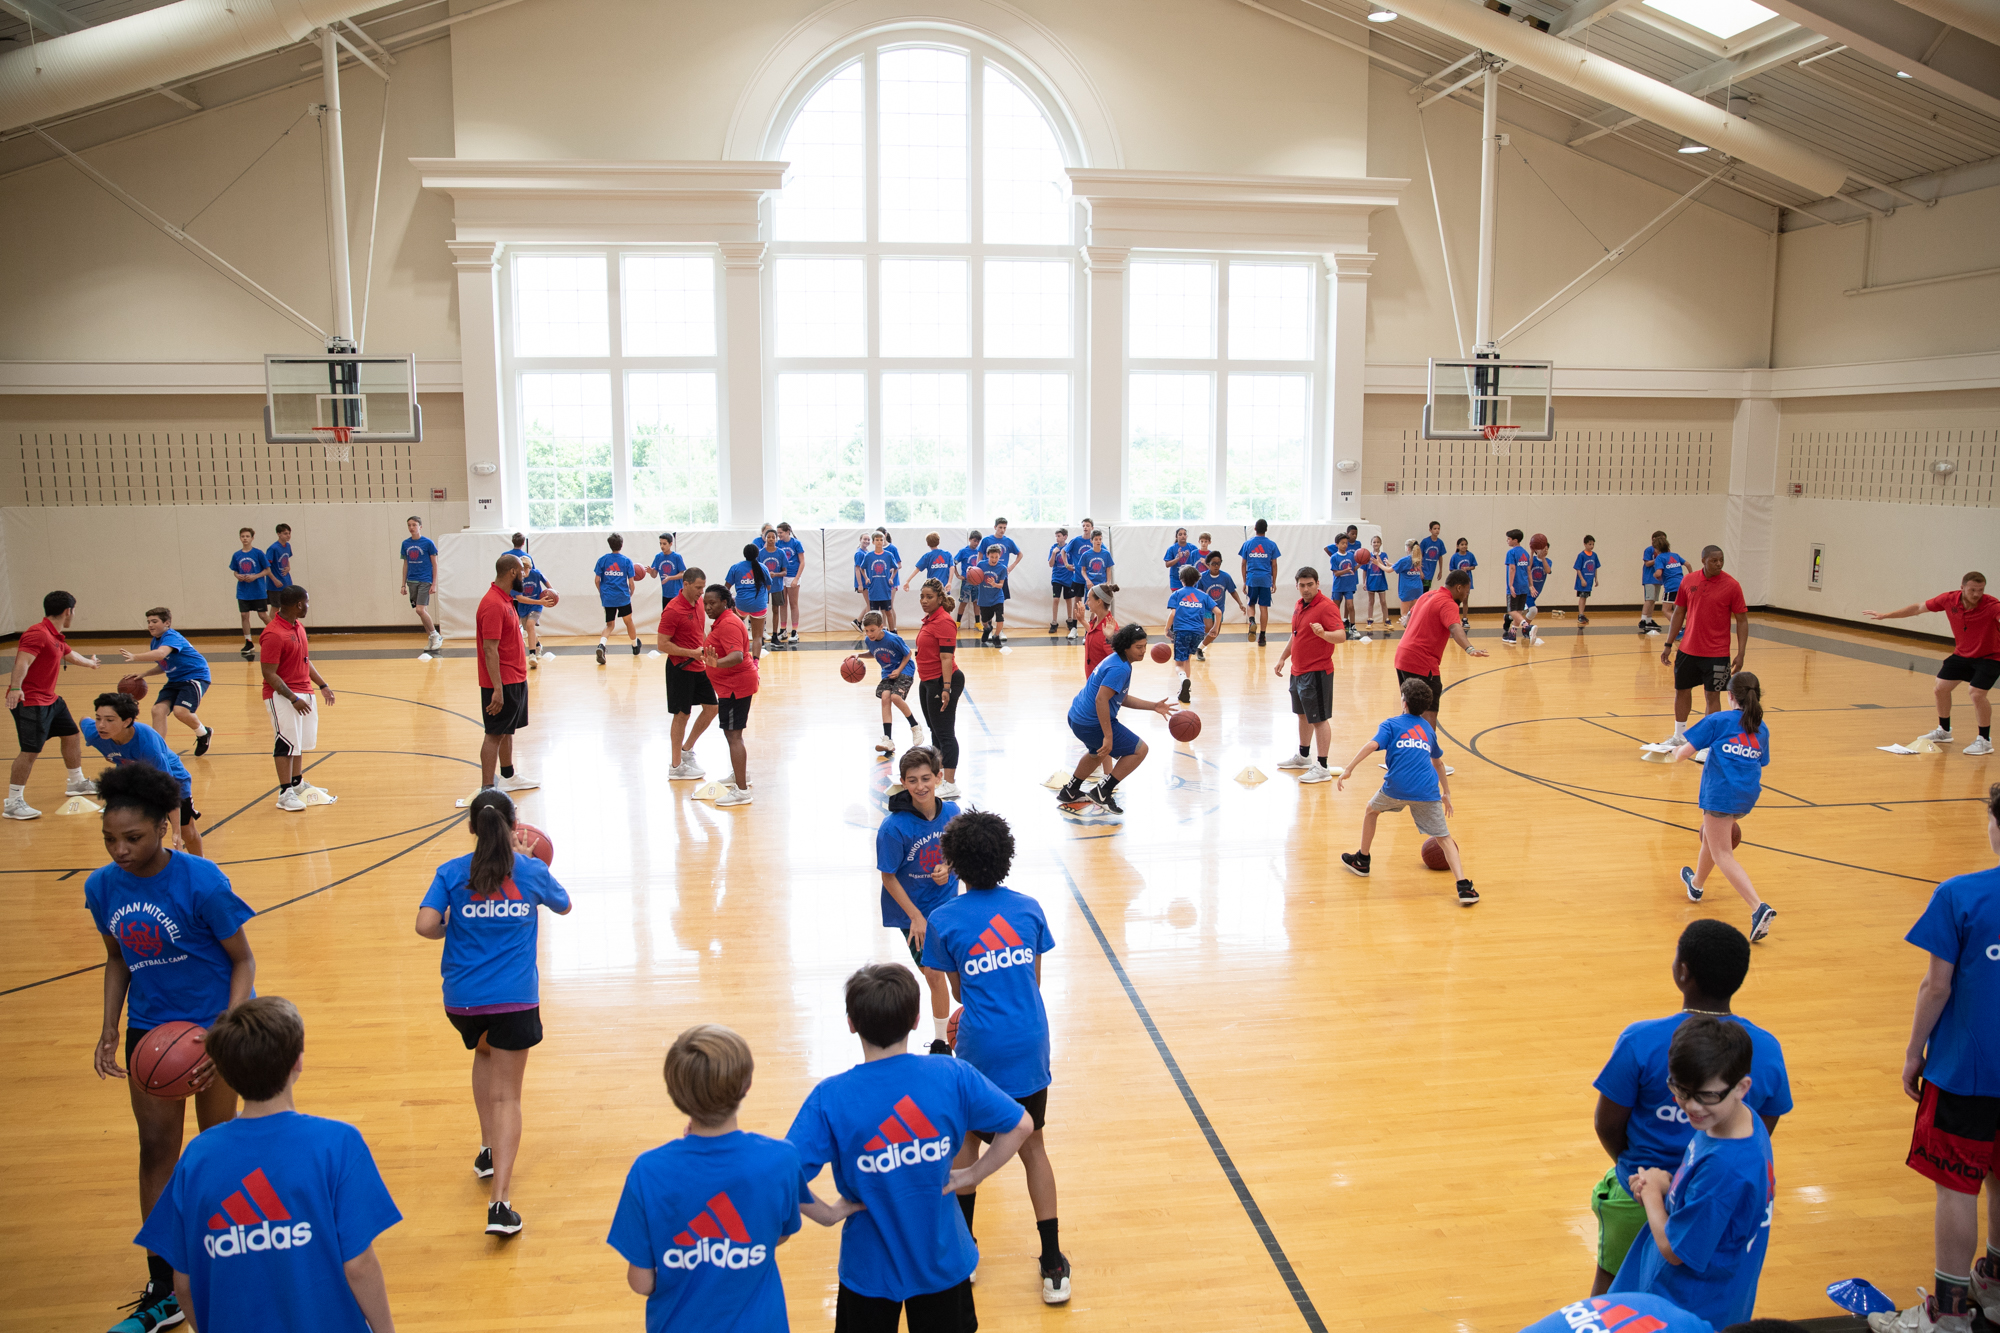 190601-donovan-mitchell-basketball-camp-grade5-9-WH-4016 copy.jpg